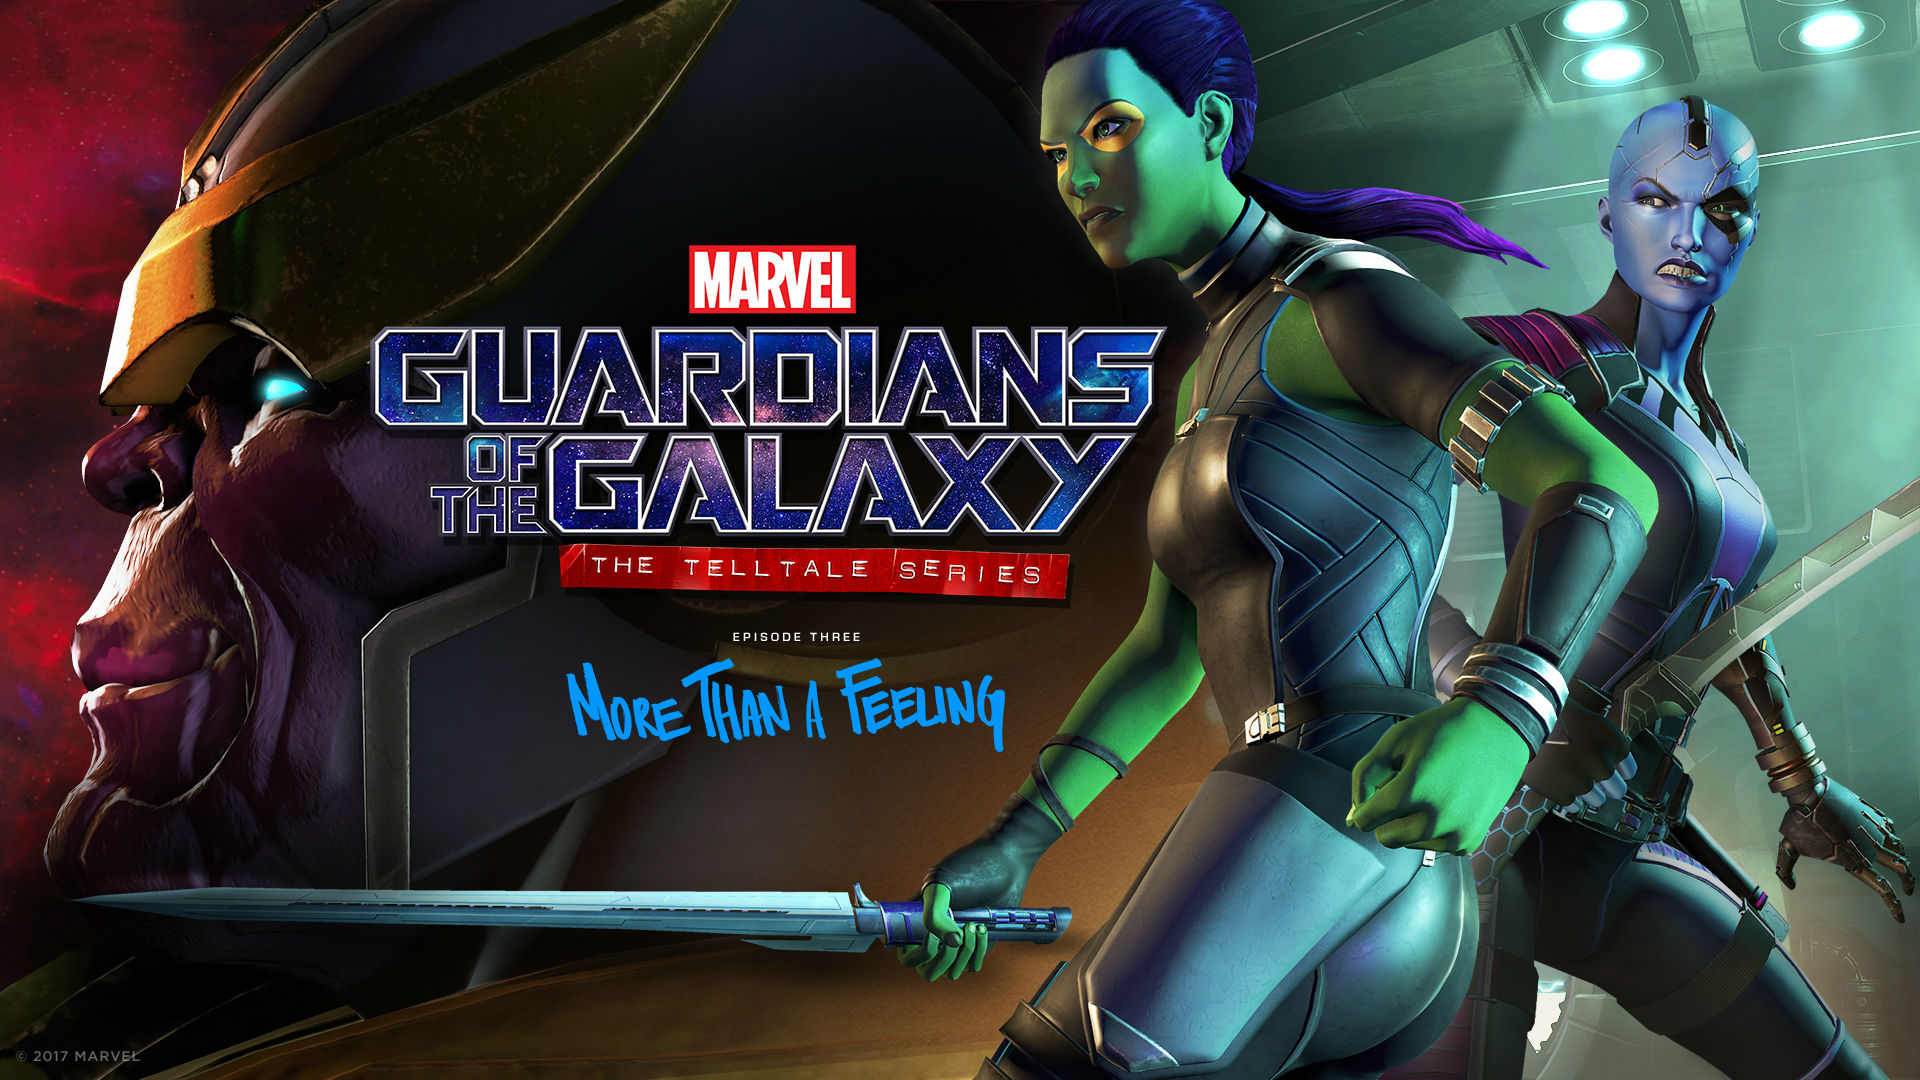 Marvel's Guardians of the Galaxy: A Telltale Series - Episode Three: More Than A Feeling Review